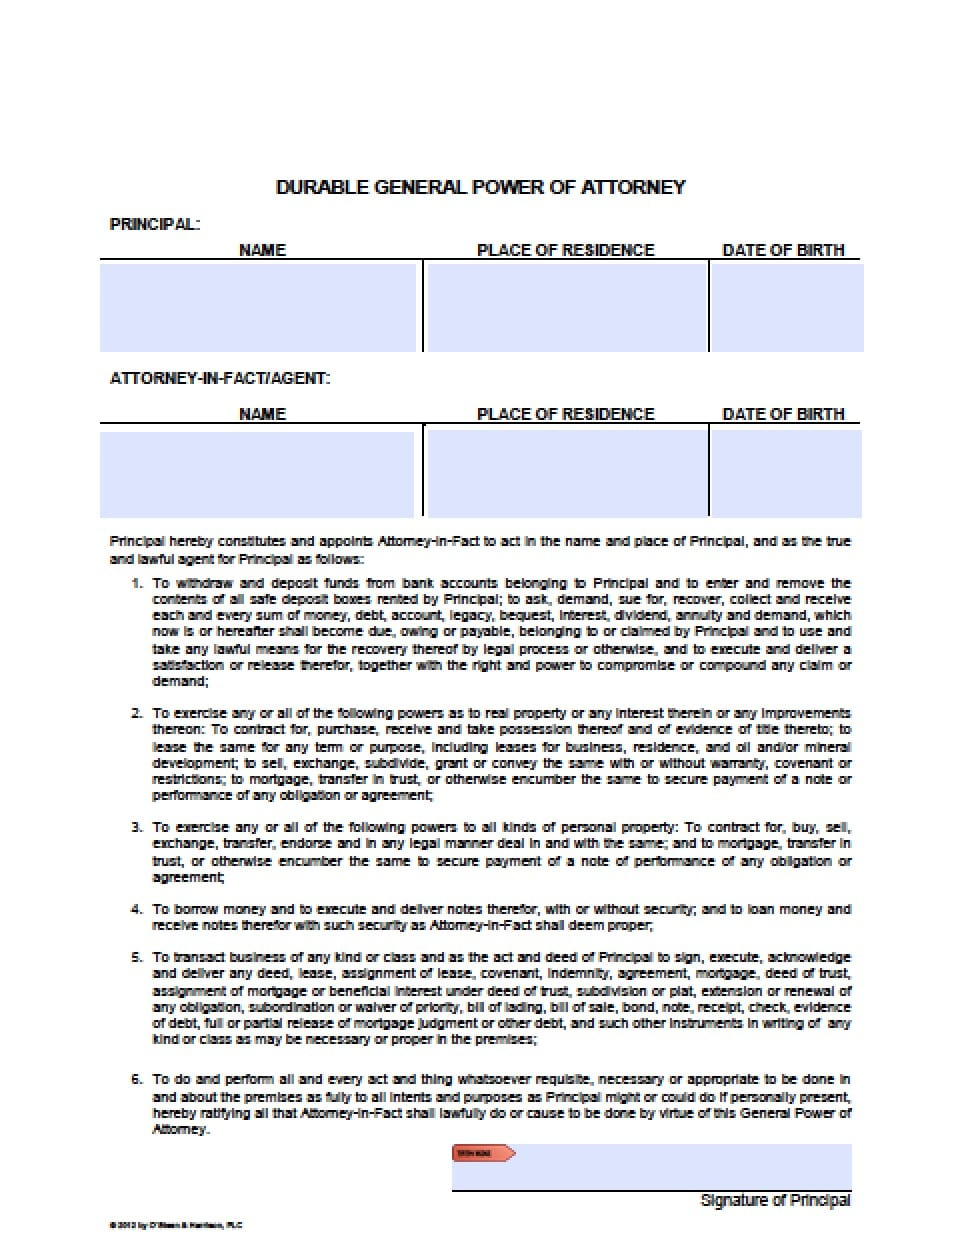 free arizona power of attorney forms in fillable pdf | 9 types